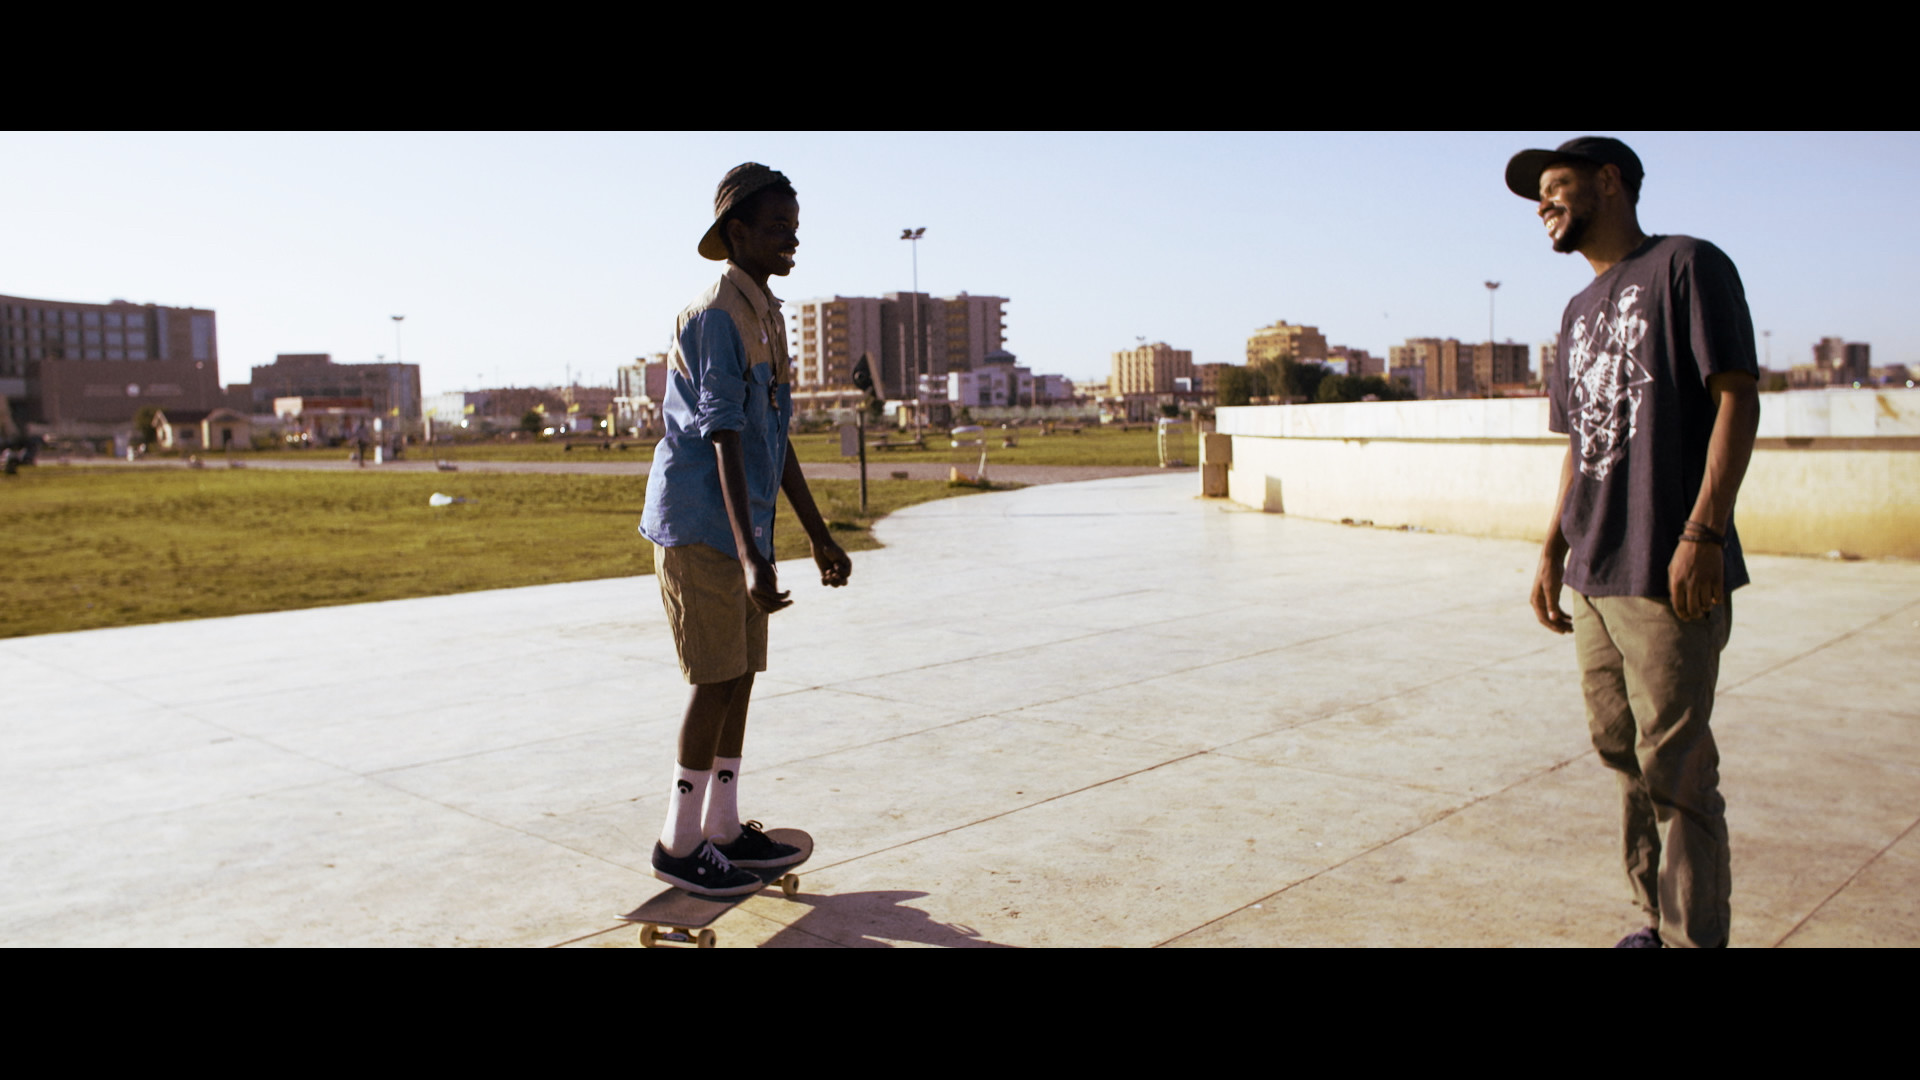 EDITUDE PICTURES Momen The Skater